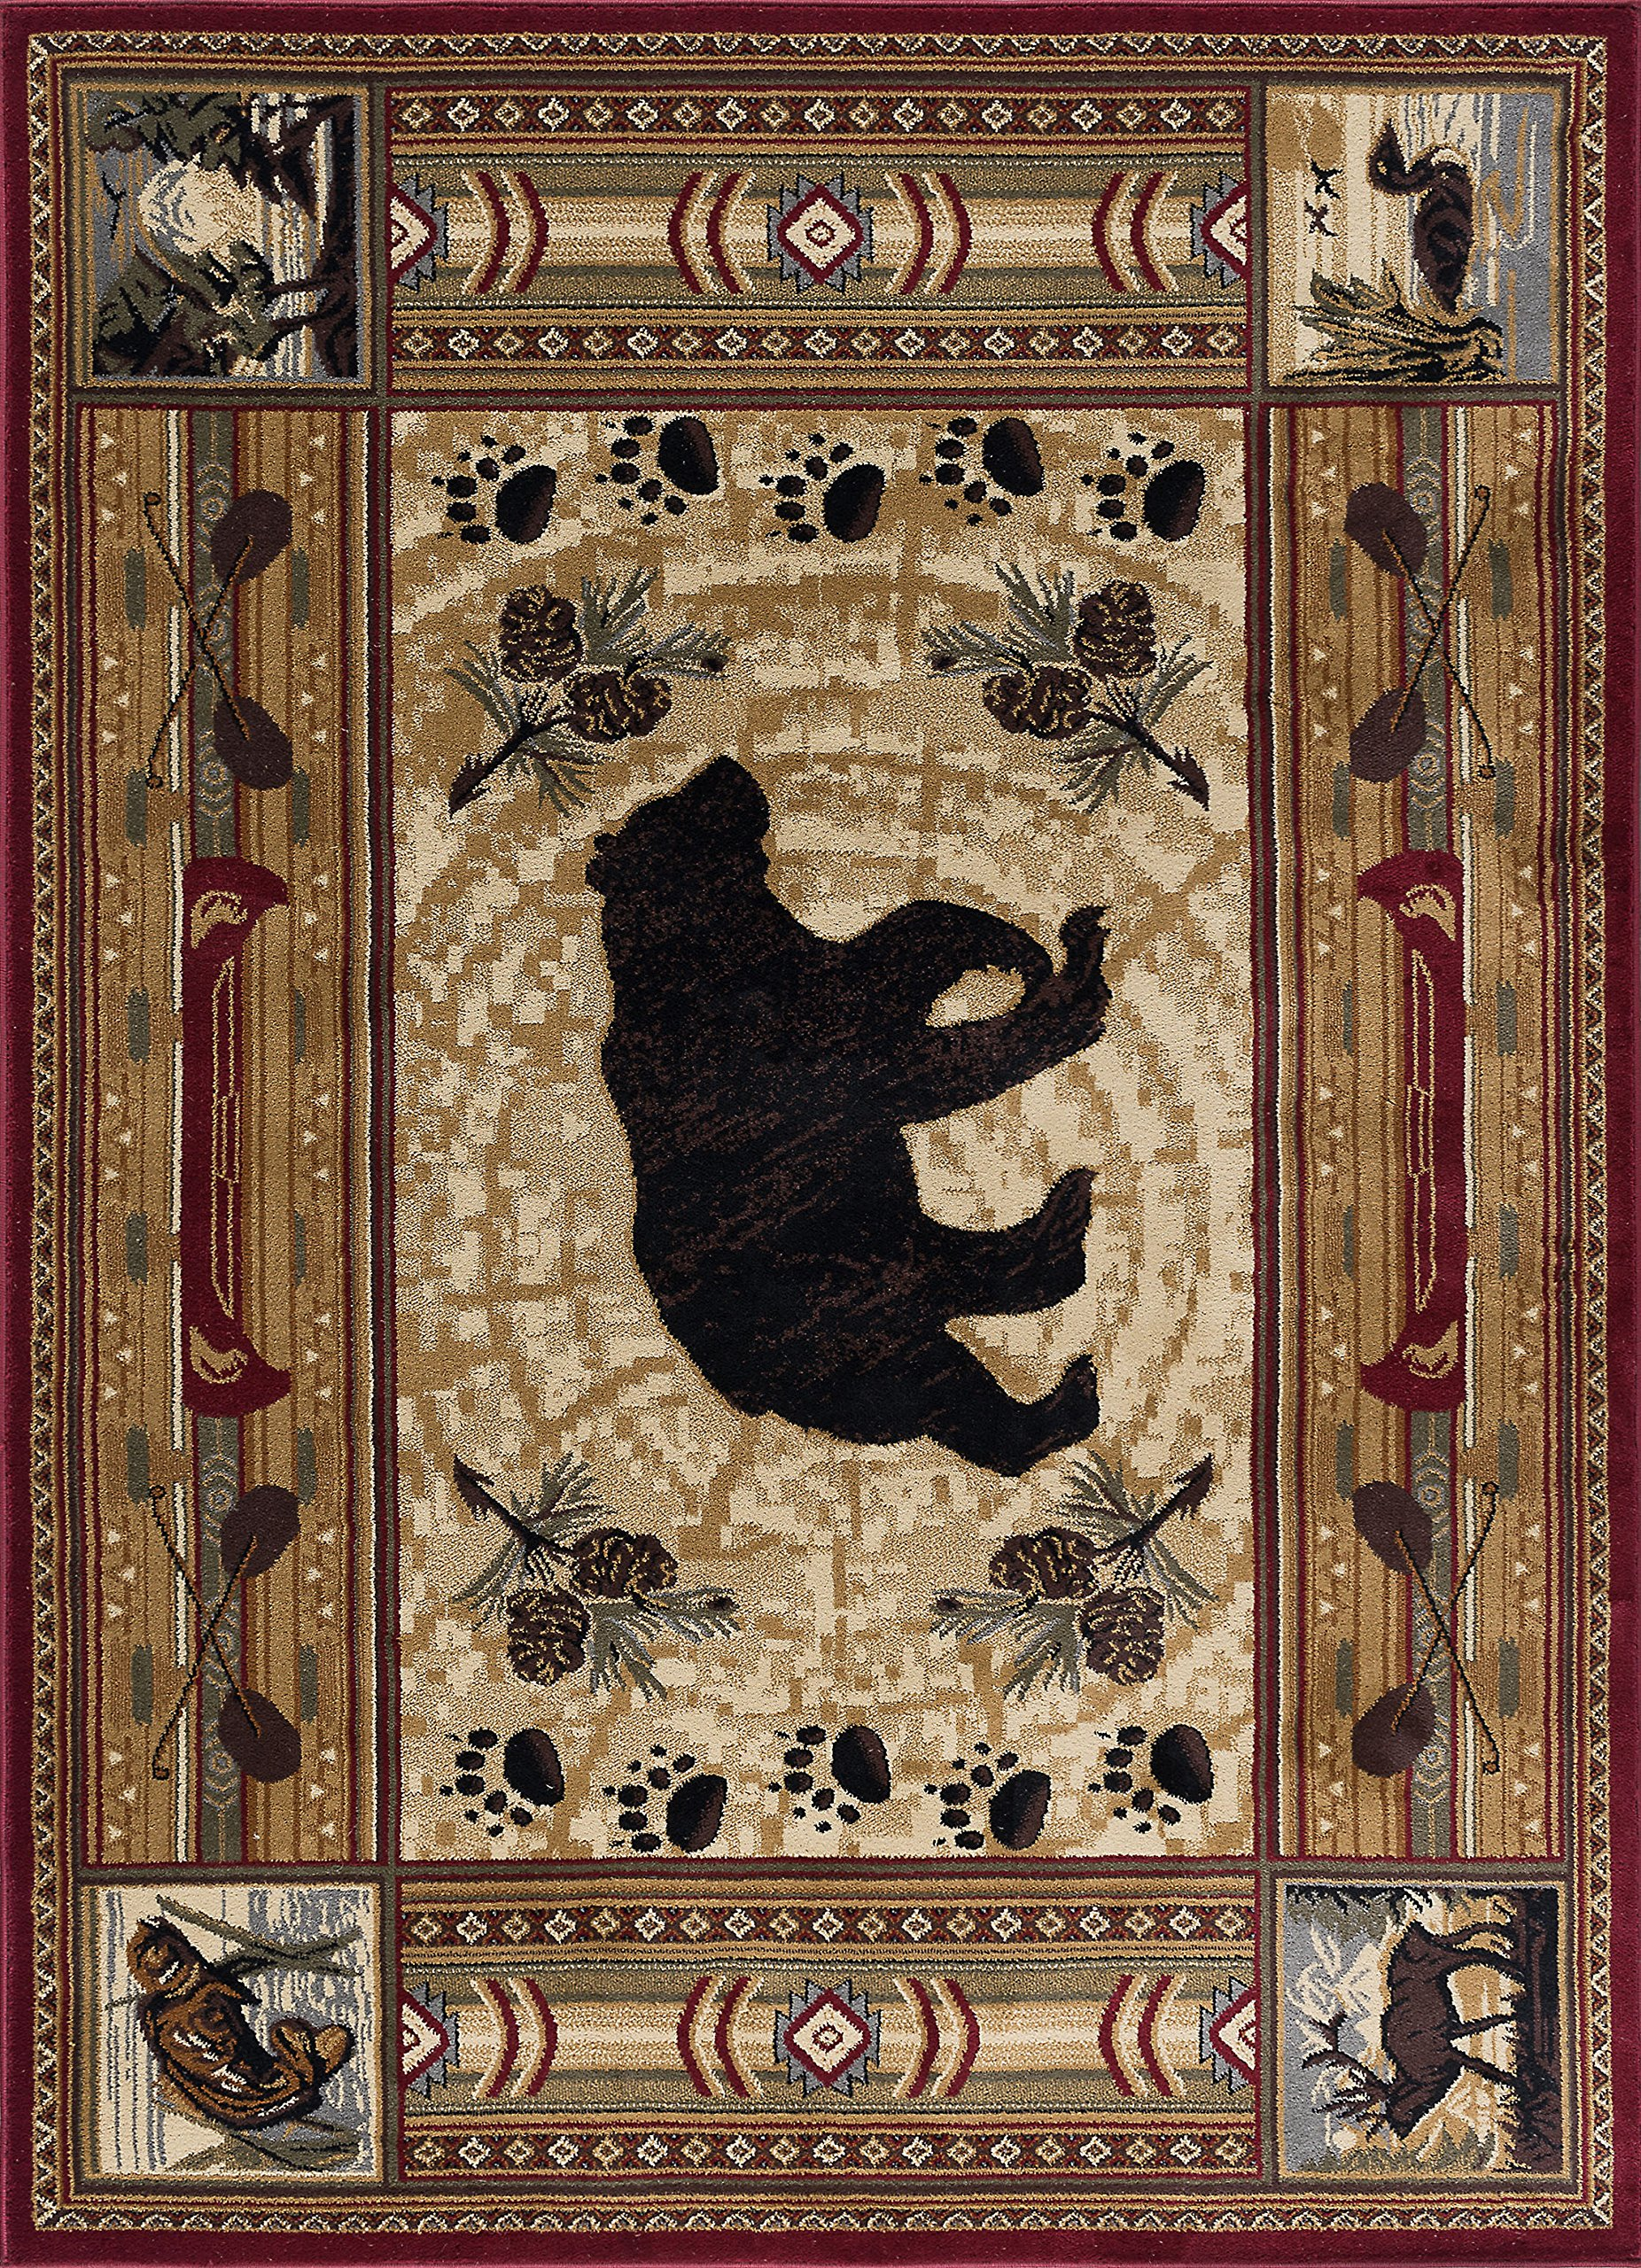 Black Bear Novelty Lodge Pattern Brown Rectangle Area Rug, 8' x 10' by Universal Rugs